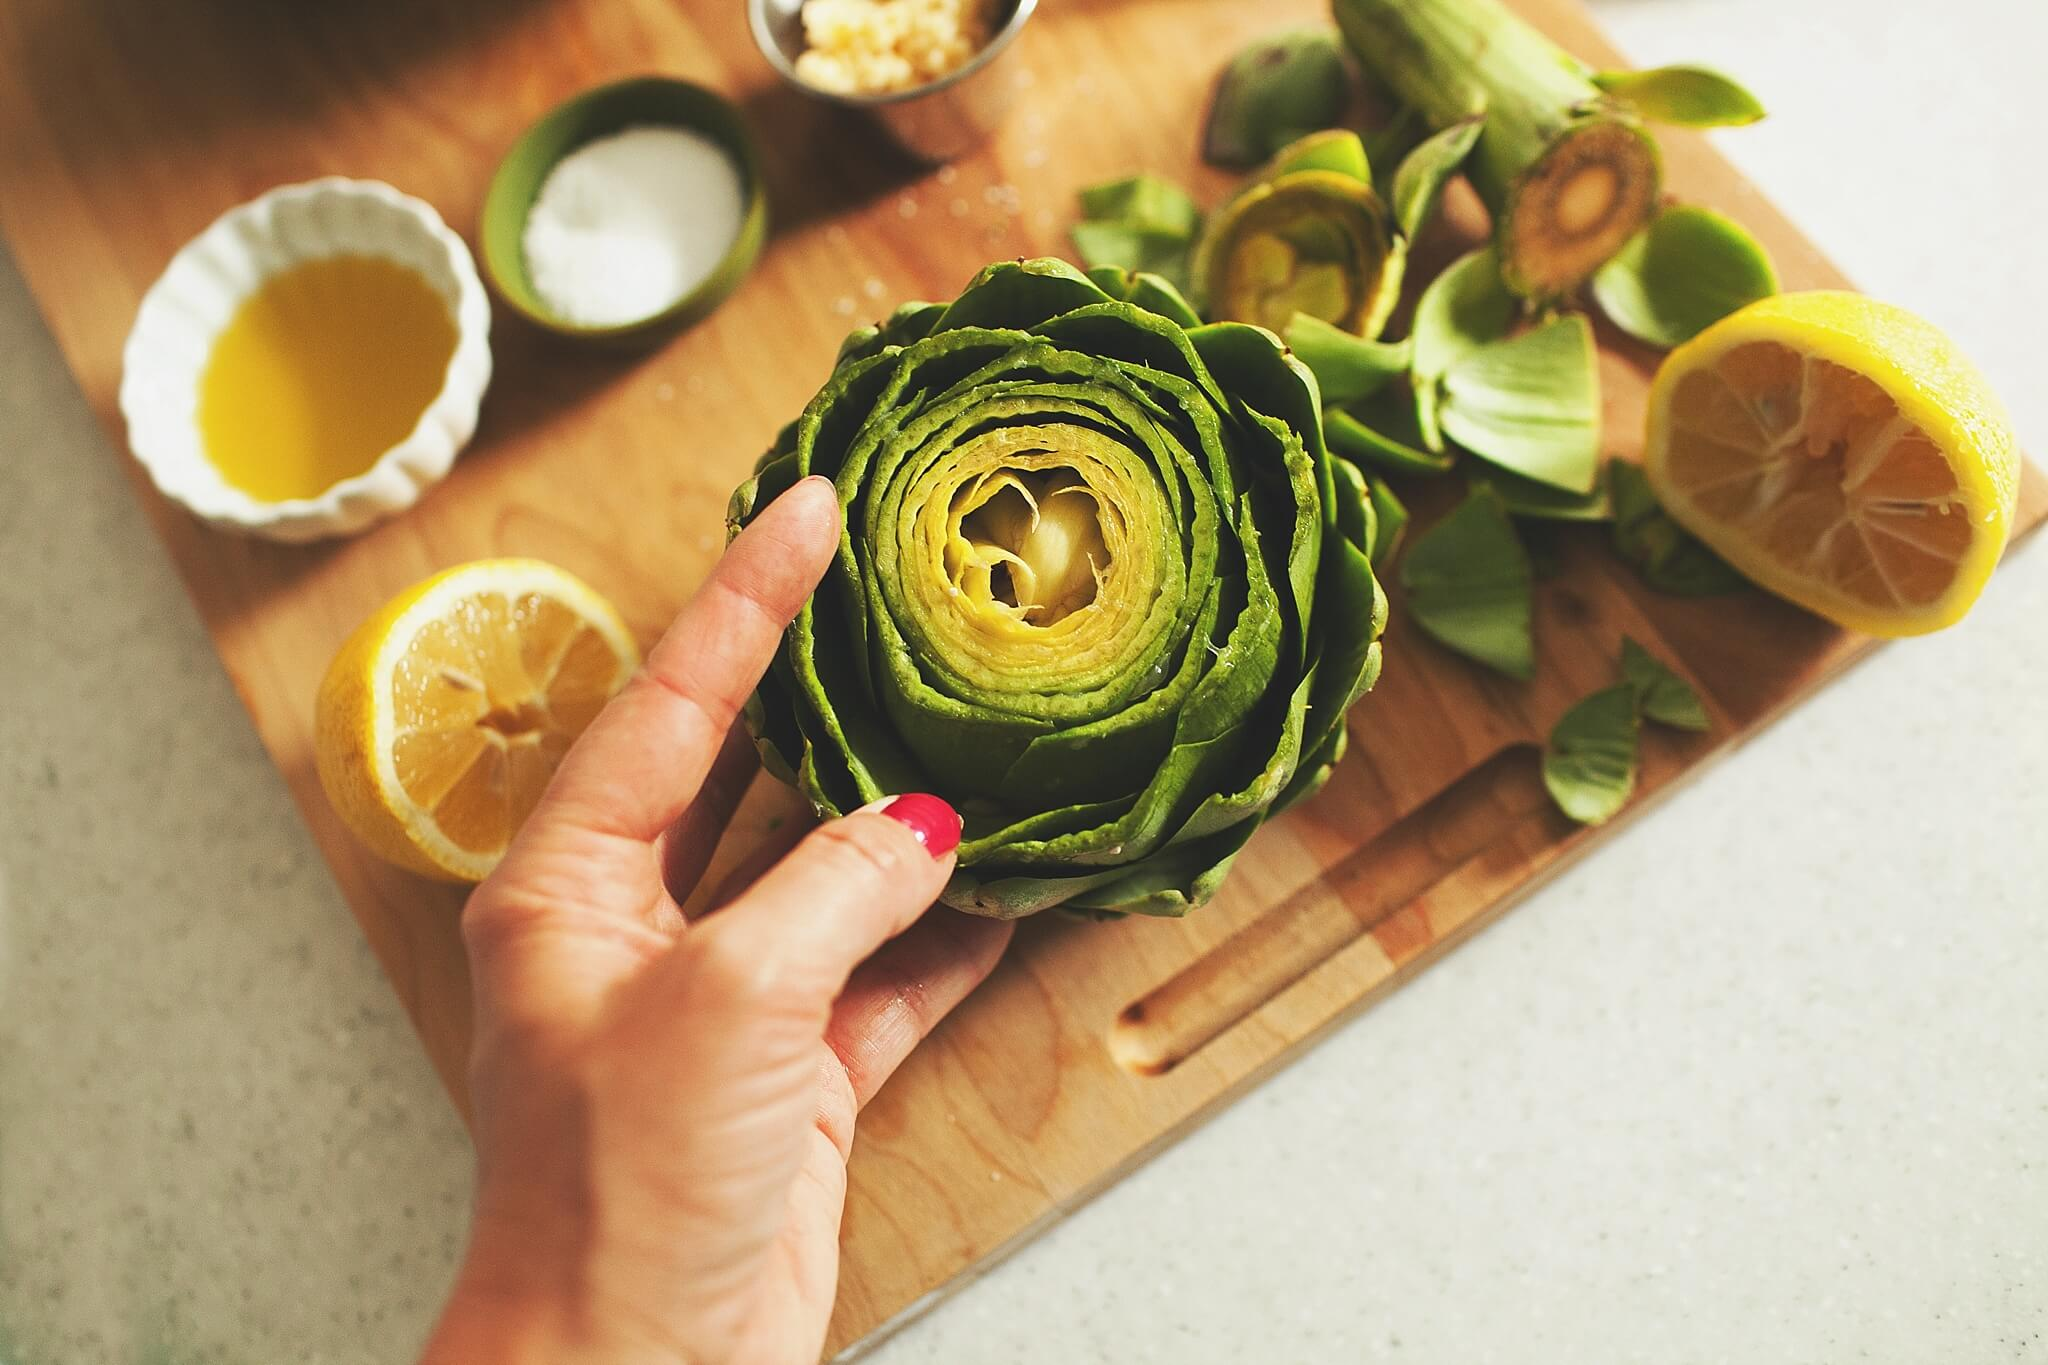 How to Cook Crockpot Artichokes - Step 5: Open up the petals